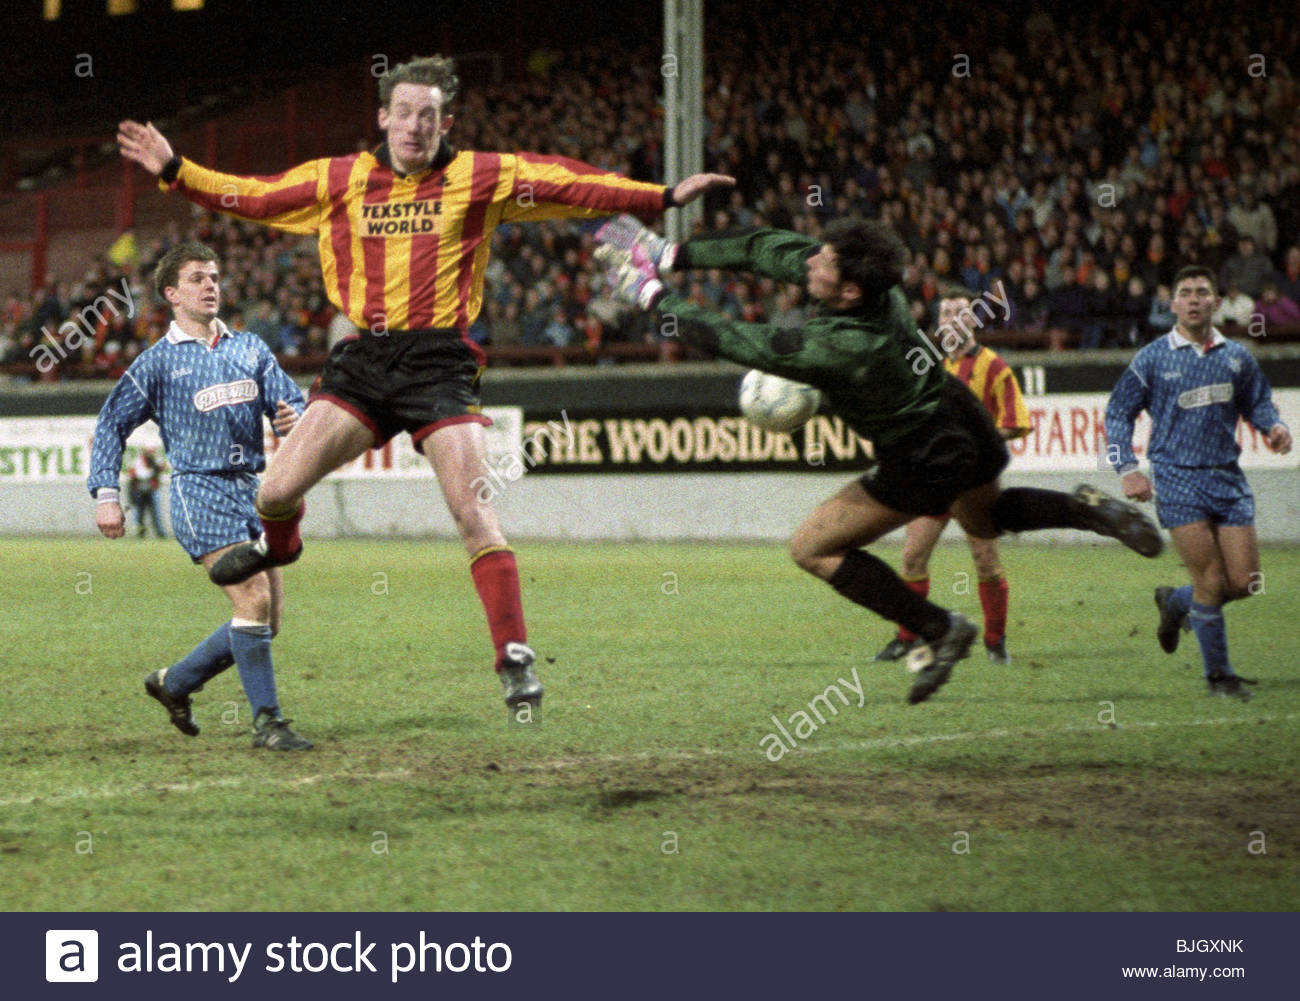 09/01/93 TENNENT'S SCOTTISH CUP THIRD ROUND PARTICK THISTLE v COWDENBEATH (0-1) FIRHILL - GLASGOW Partick Thistle - Stock Image